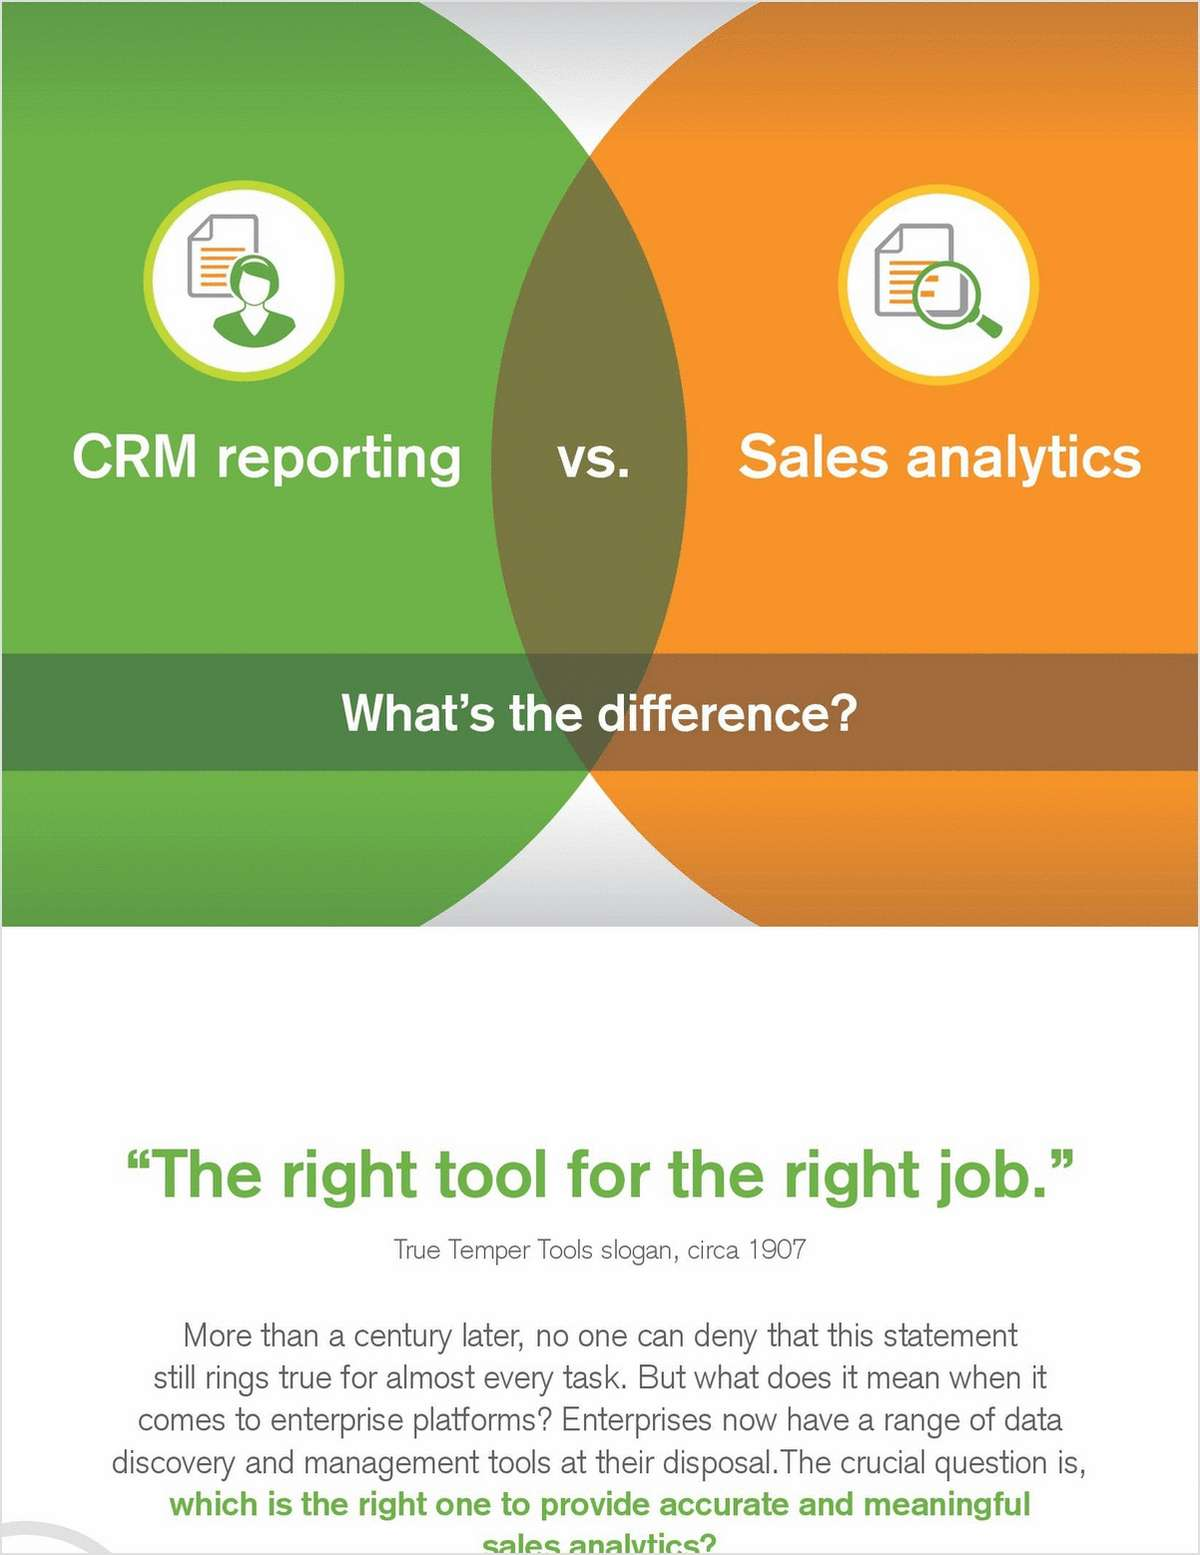 Is there a difference between CRM reporting and sales analytics?